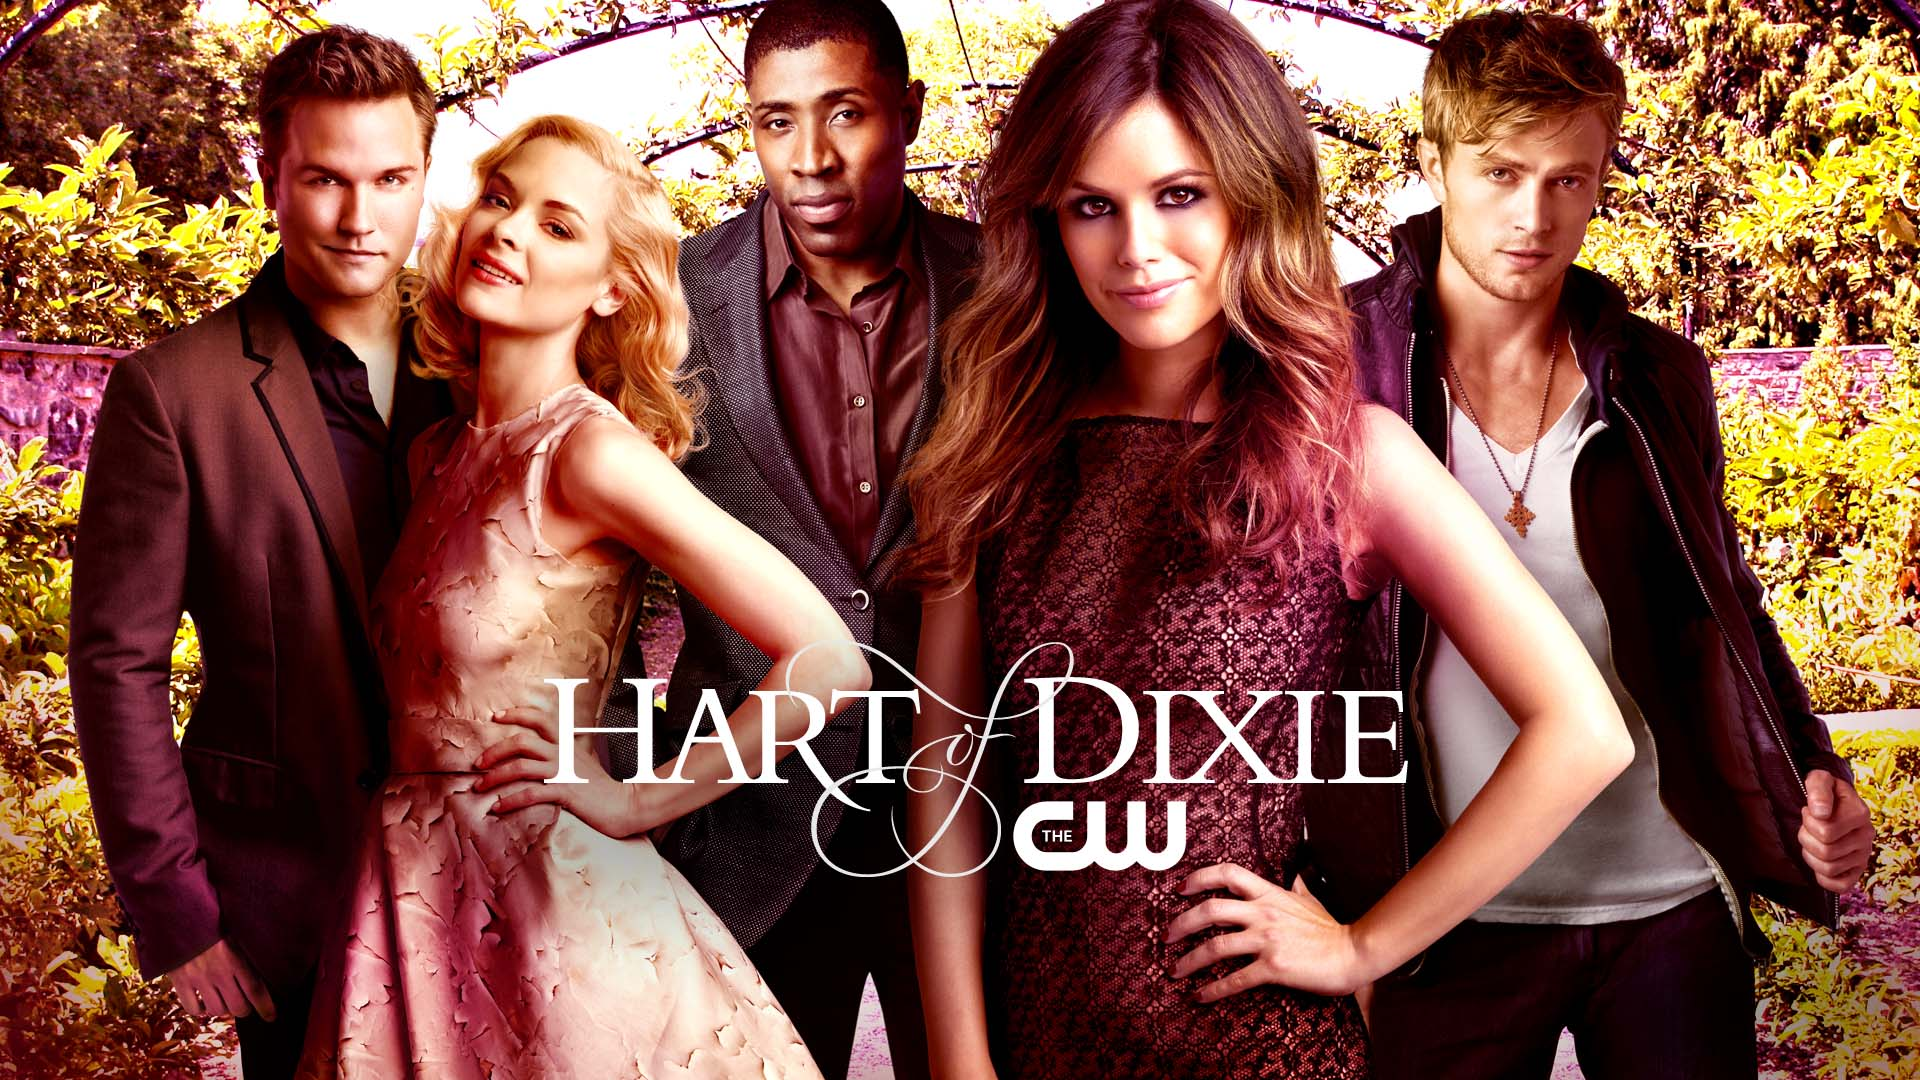 Hart of Dixie Season 5